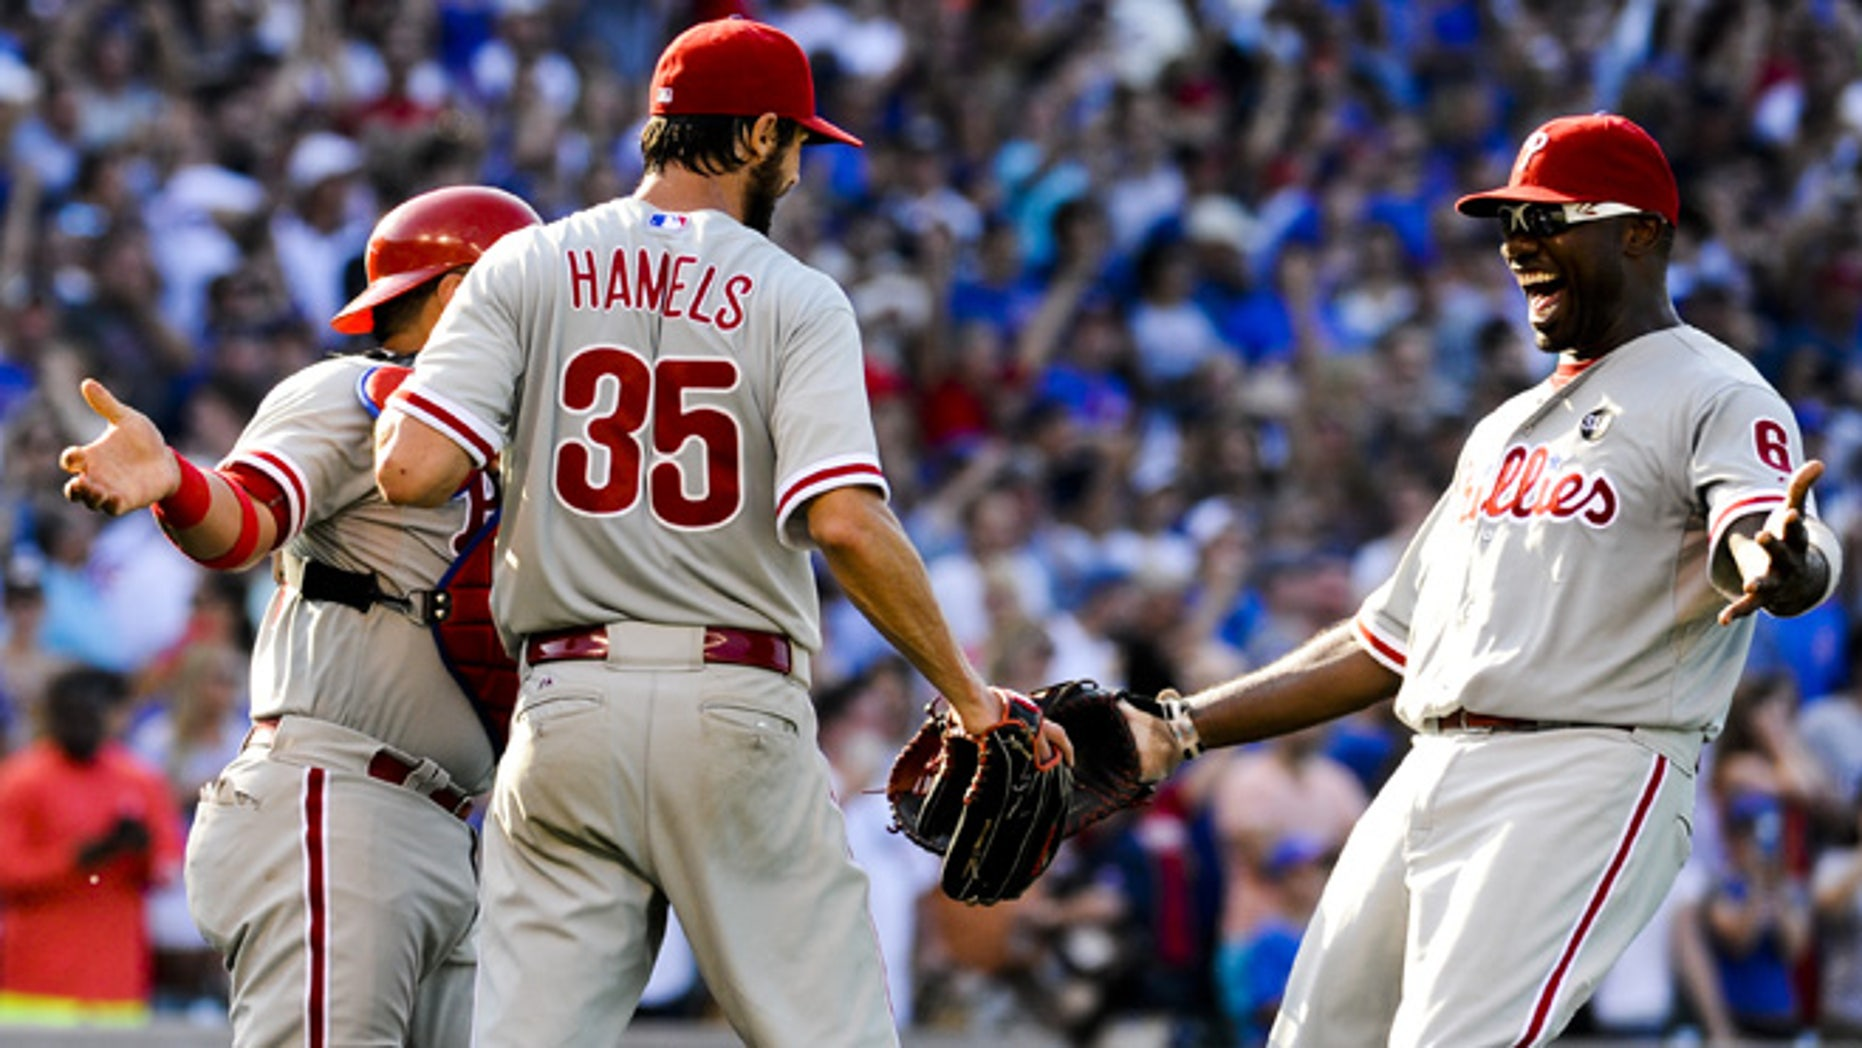 July 25, 2015: Philadelphia Phillies' starting pitcher Cole Hamels (35) is hugged by Phillies' catcher Carlos Ruiz, left, and first baseman Ryan Howard after he pitched a no-hitter during a baseball game against the Chicago Cubs in Chicago. (AP)